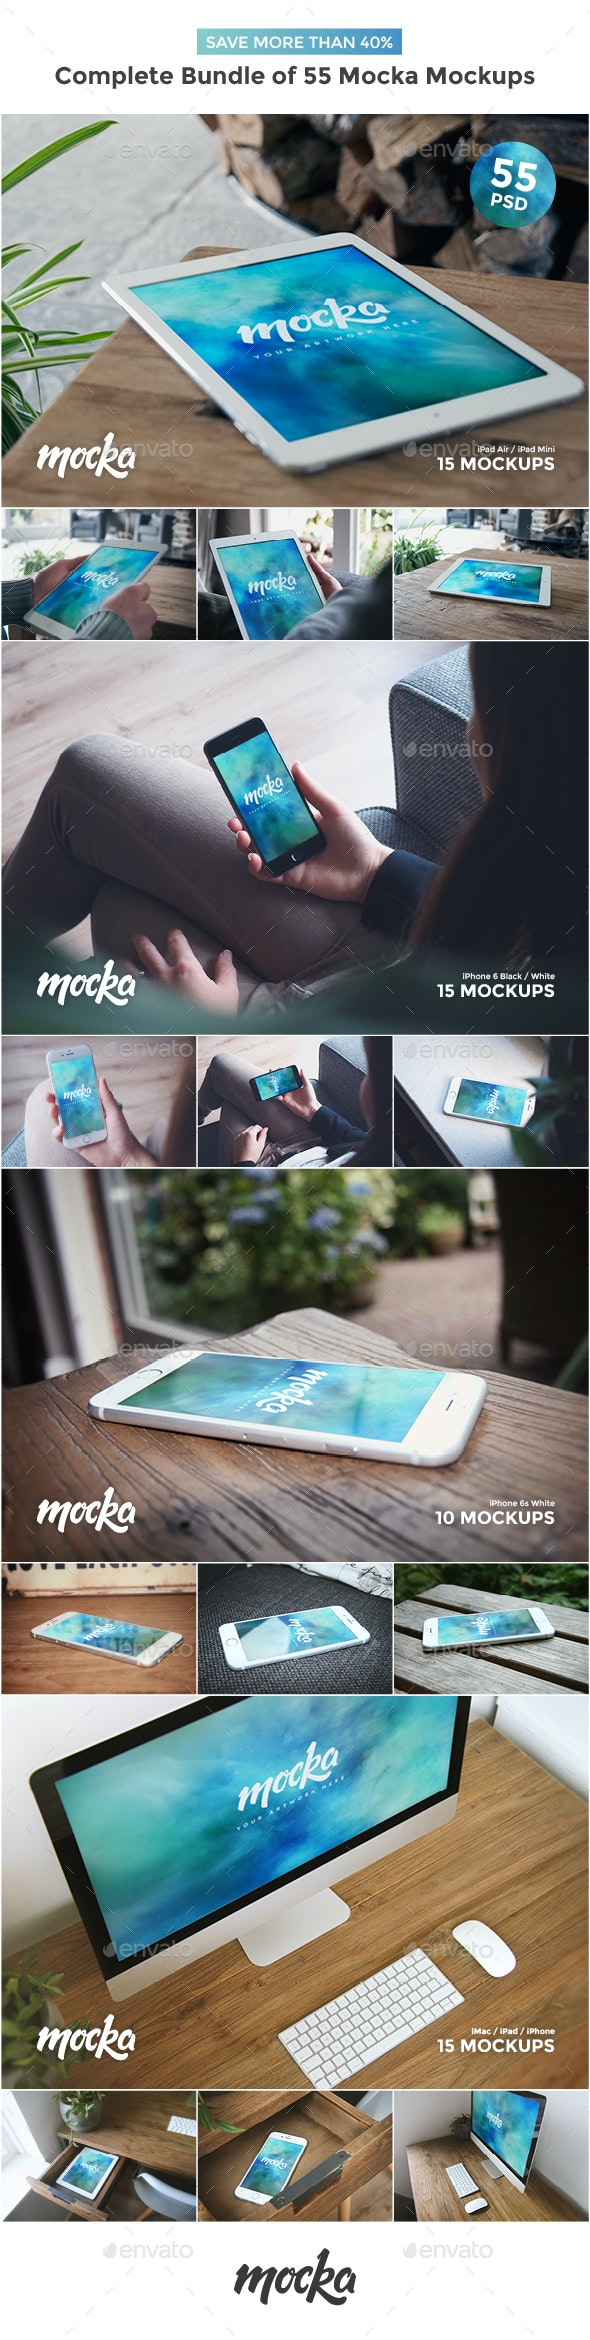 Complete Bundle of 55 Mocka Mockups - Displays Product Mock-Ups